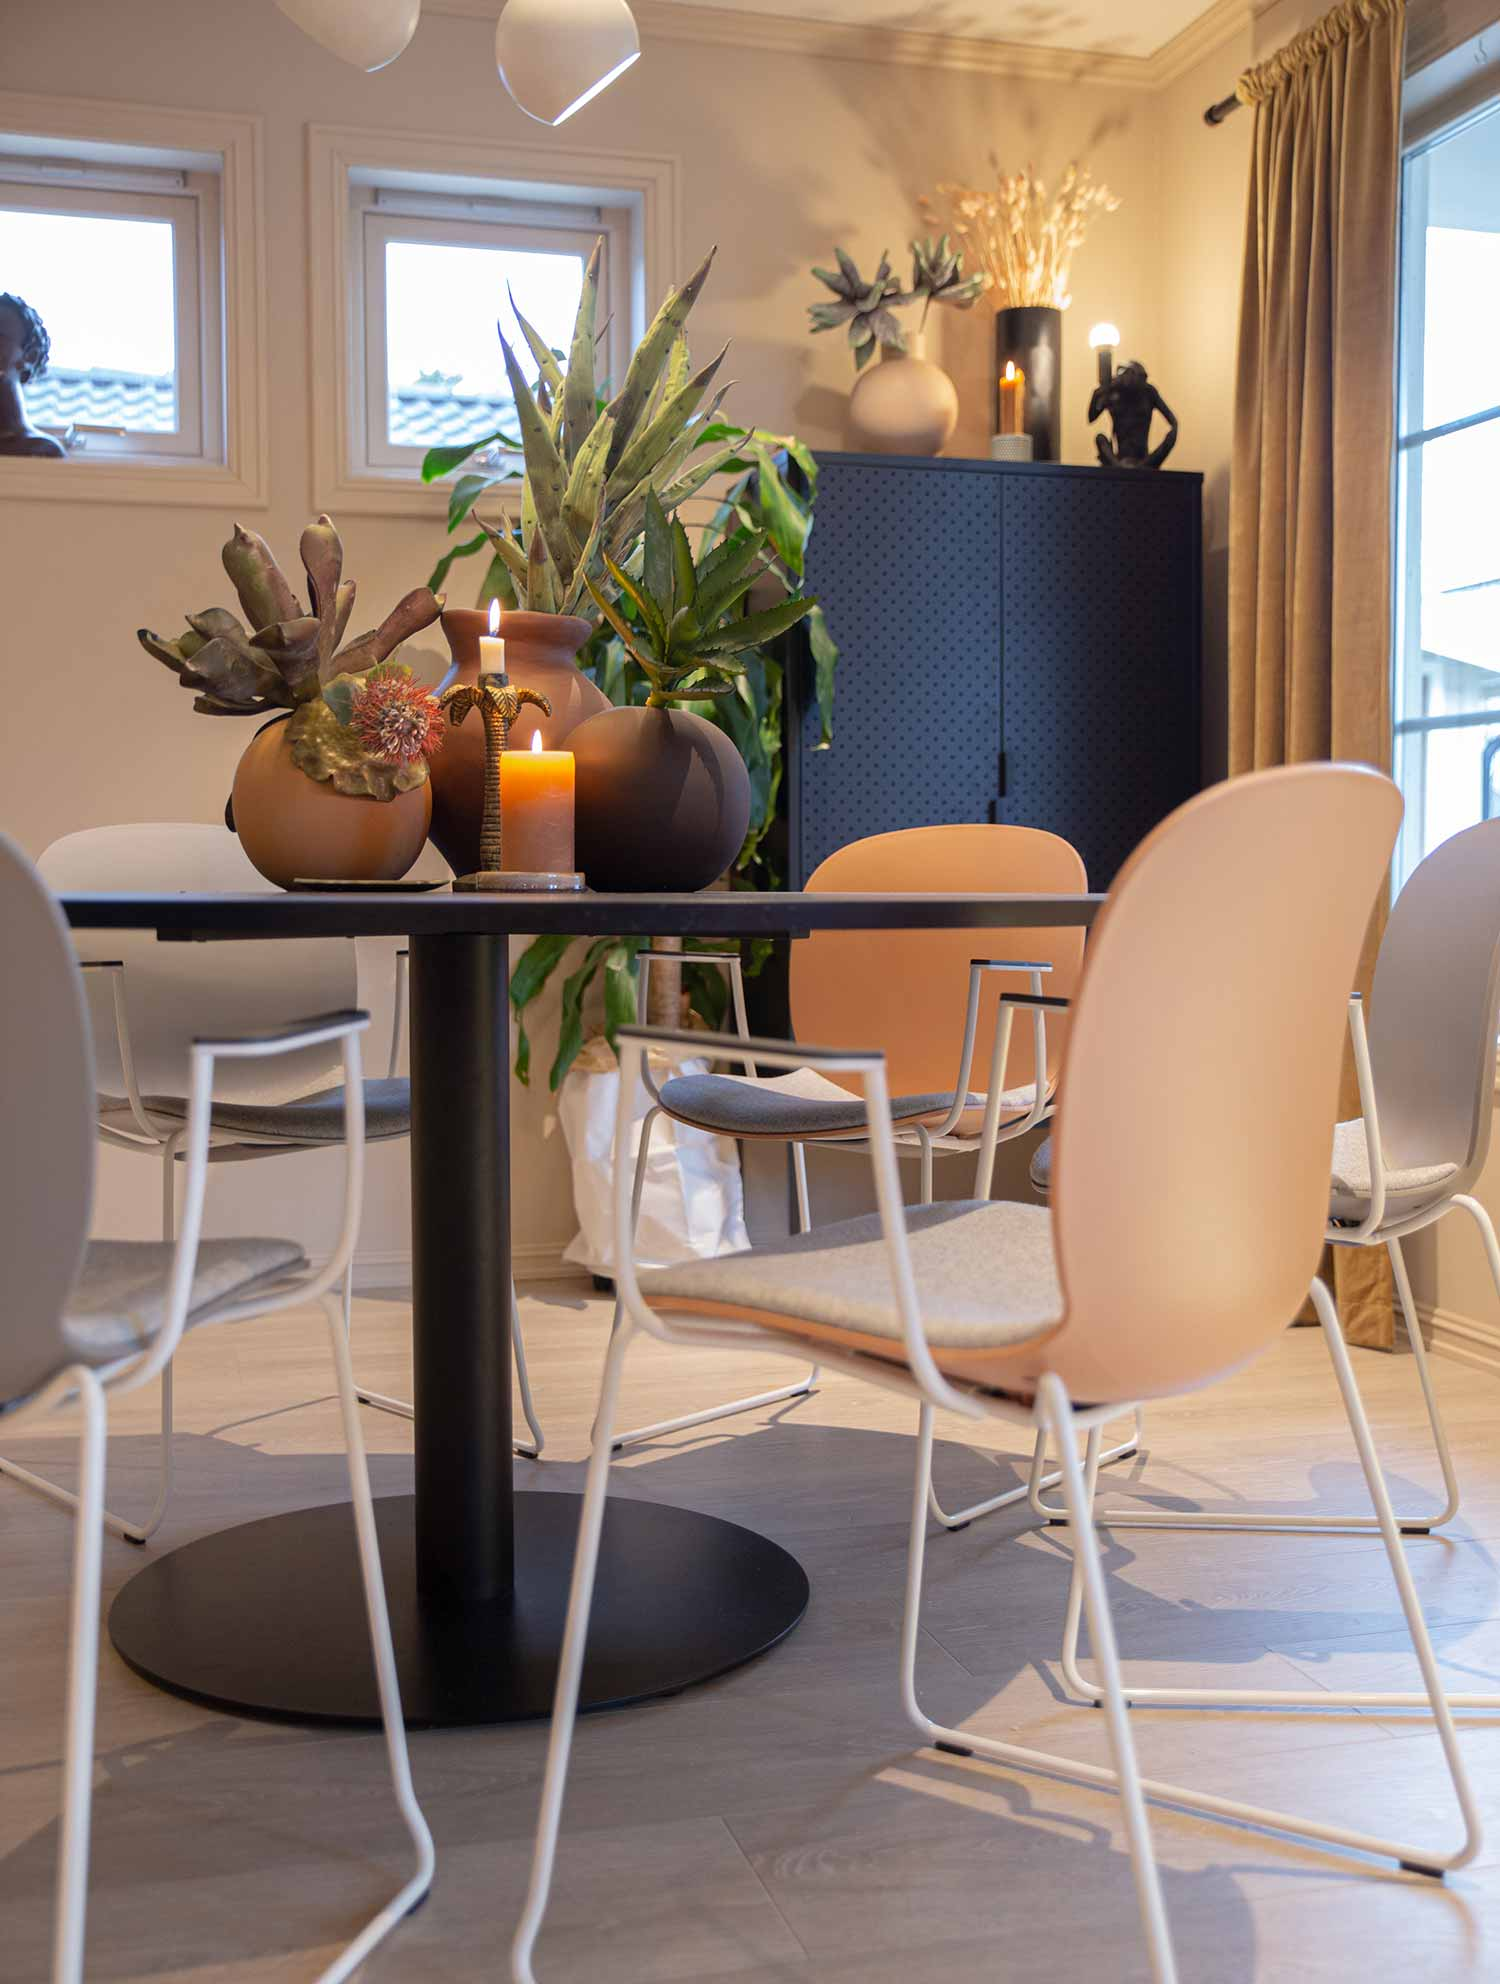 Close up of coral RBM Noor chair in a home dining room with peach walls and a round black table